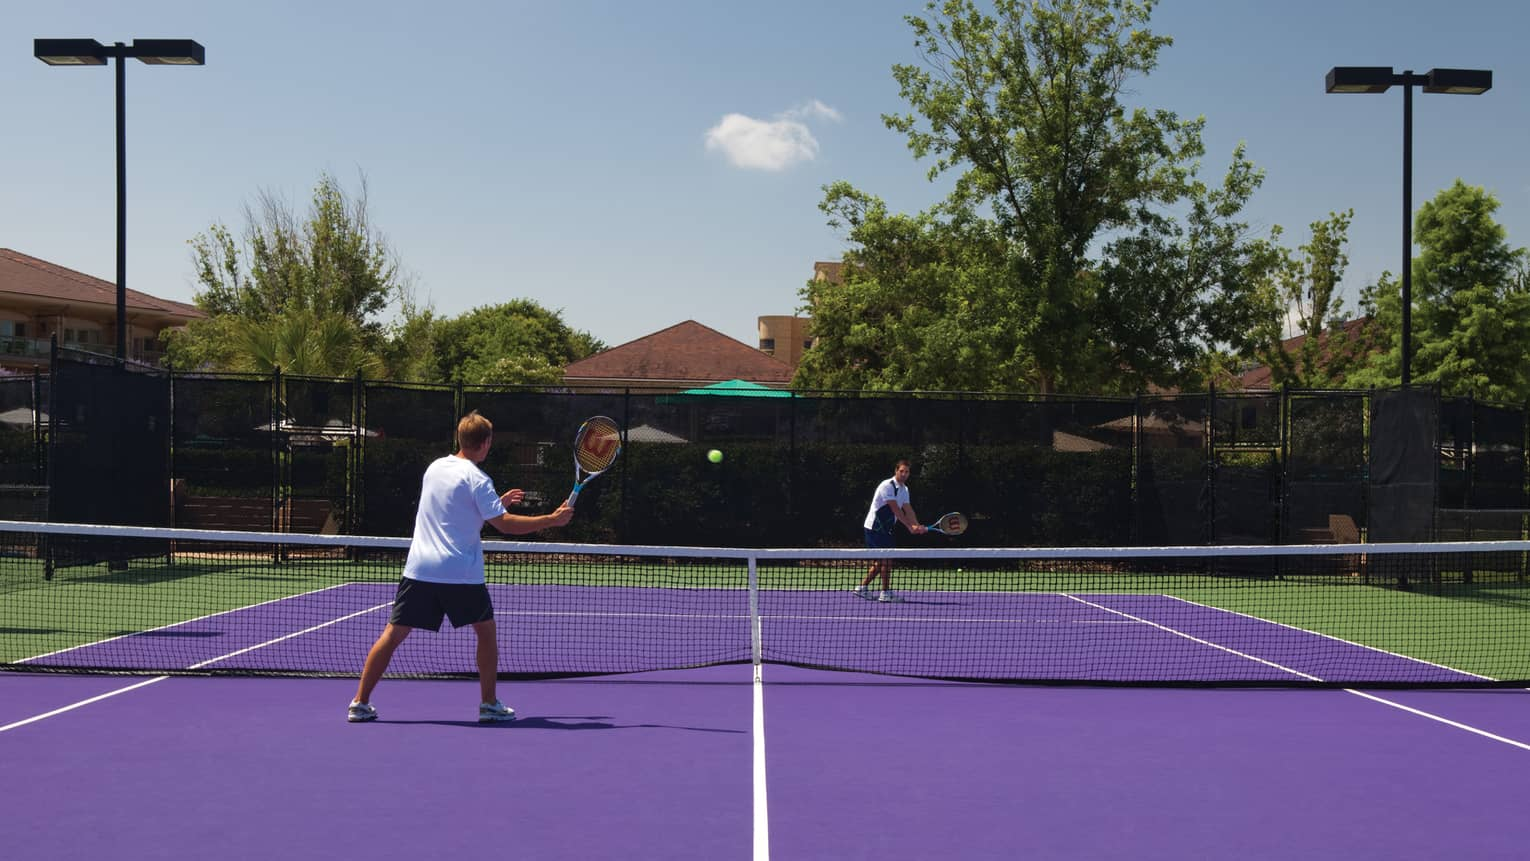 Two men play tennis game on purple court